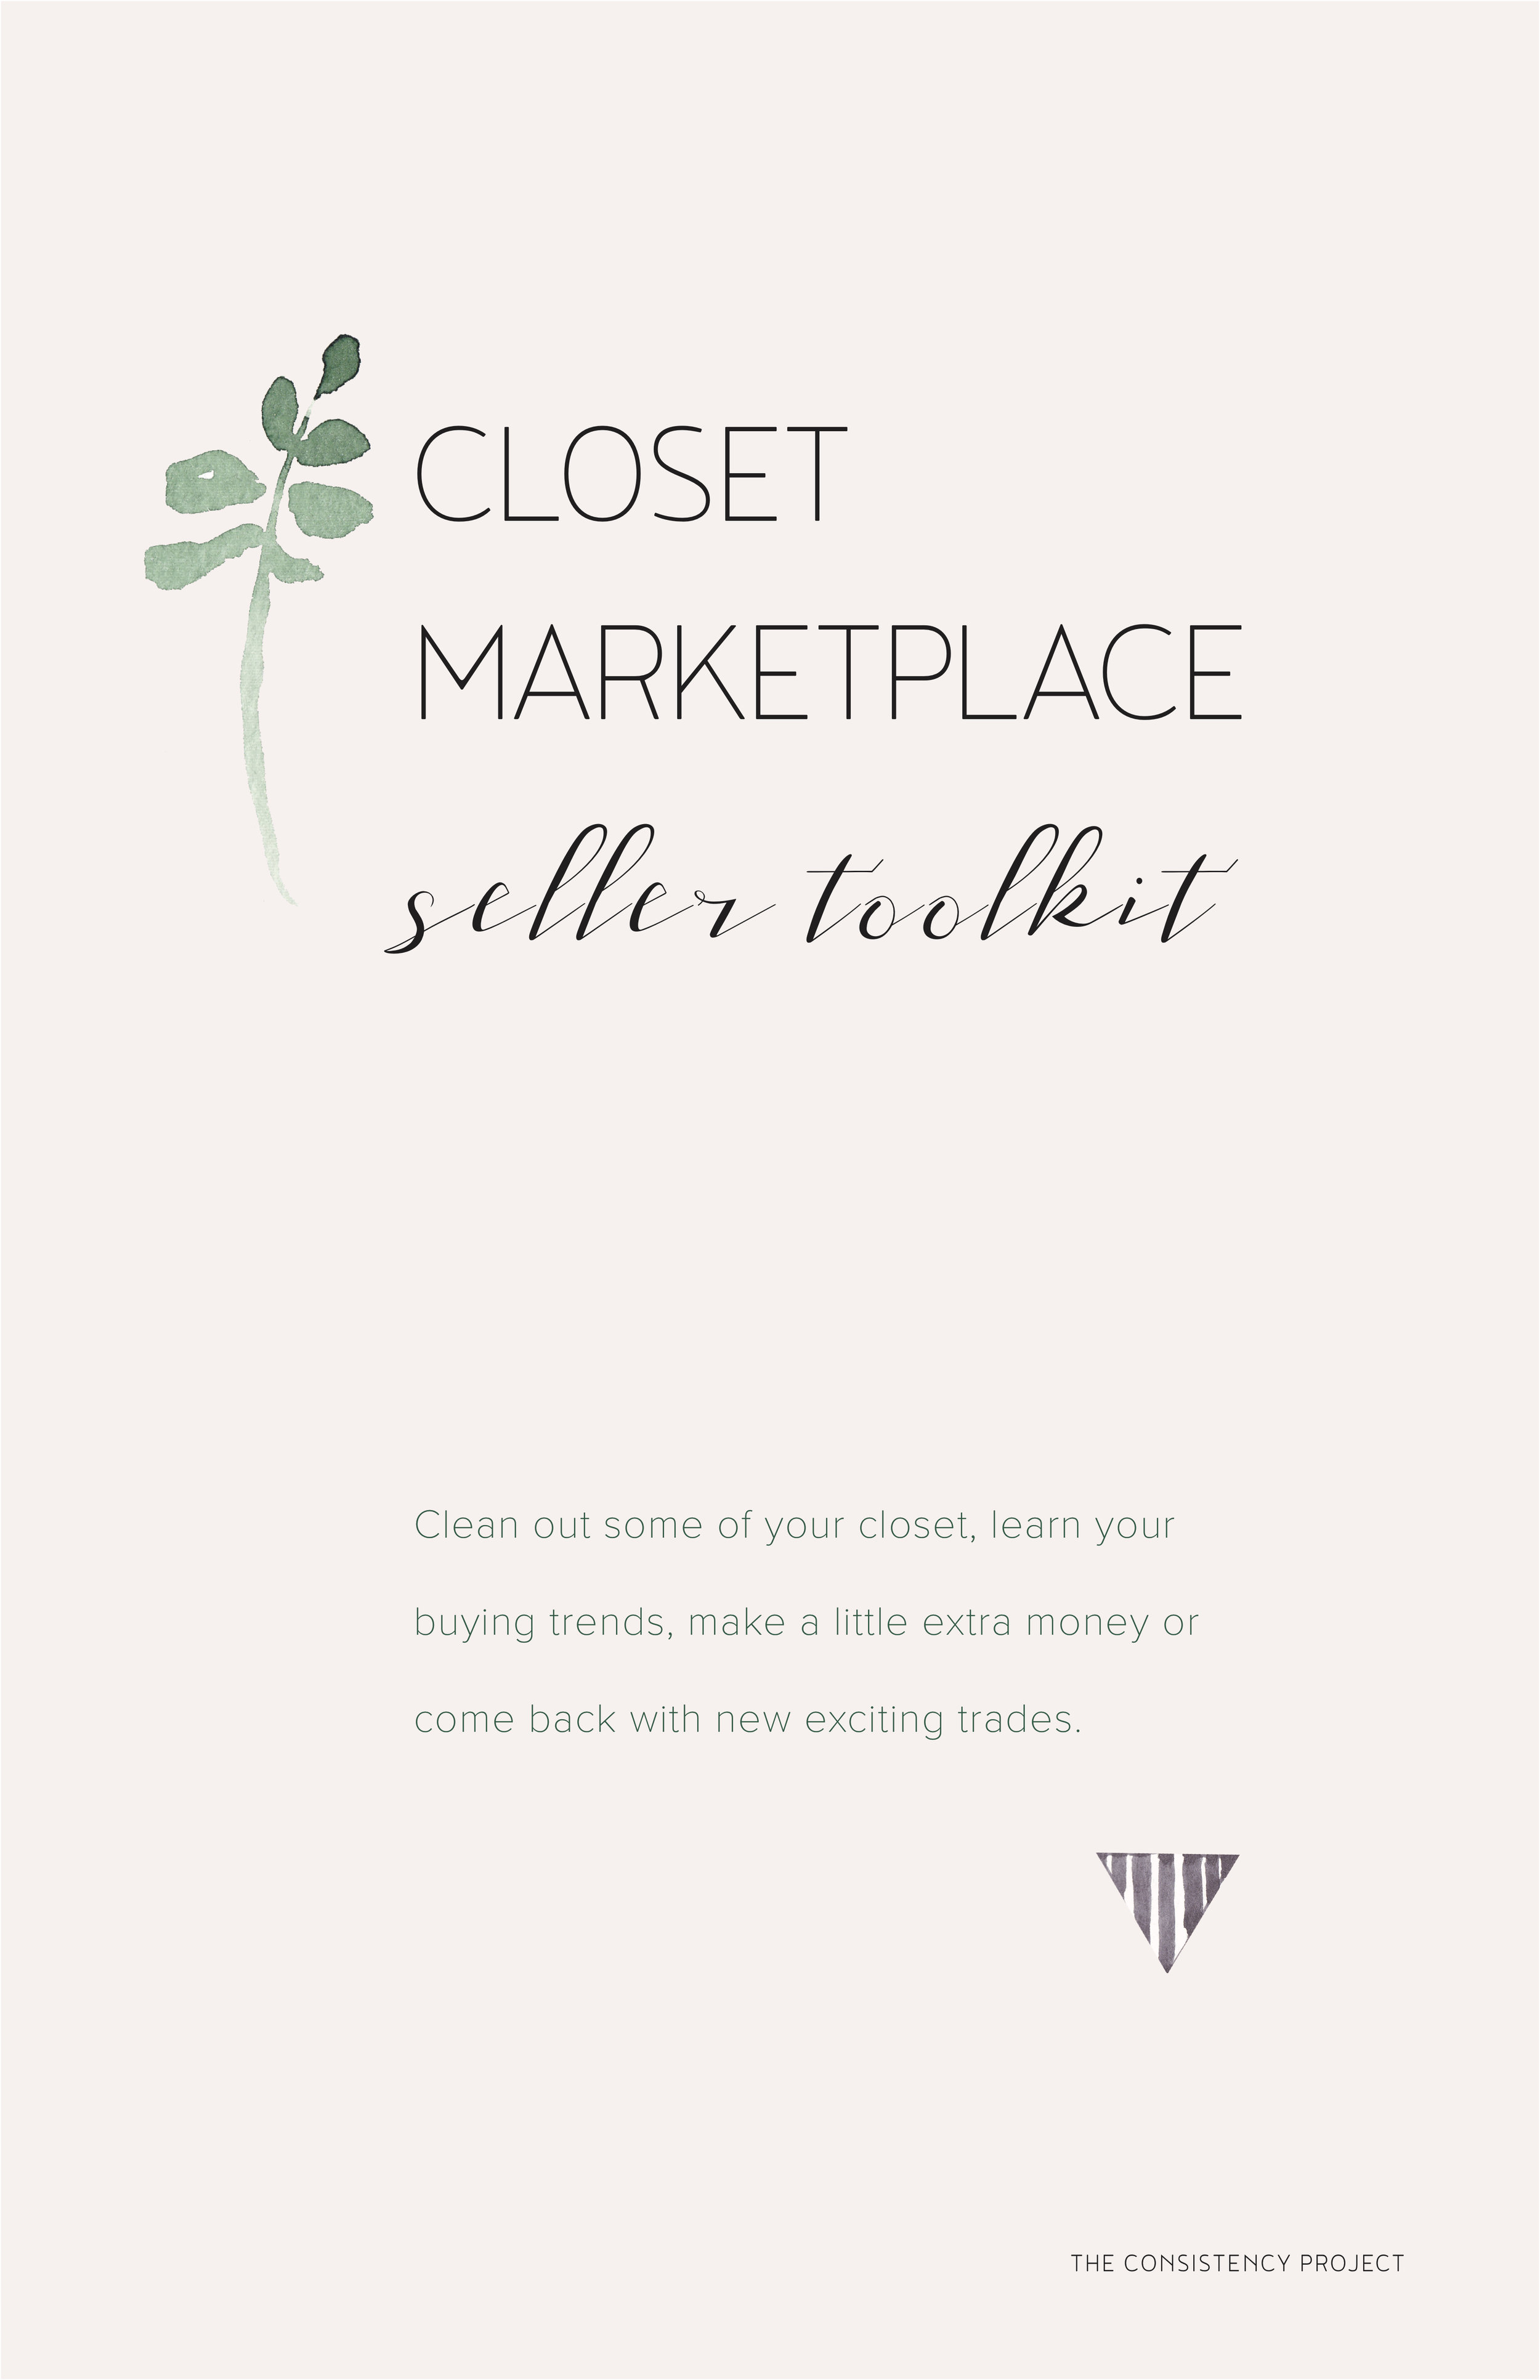 Click to download our Closet Marketplace Seller Toolkit.